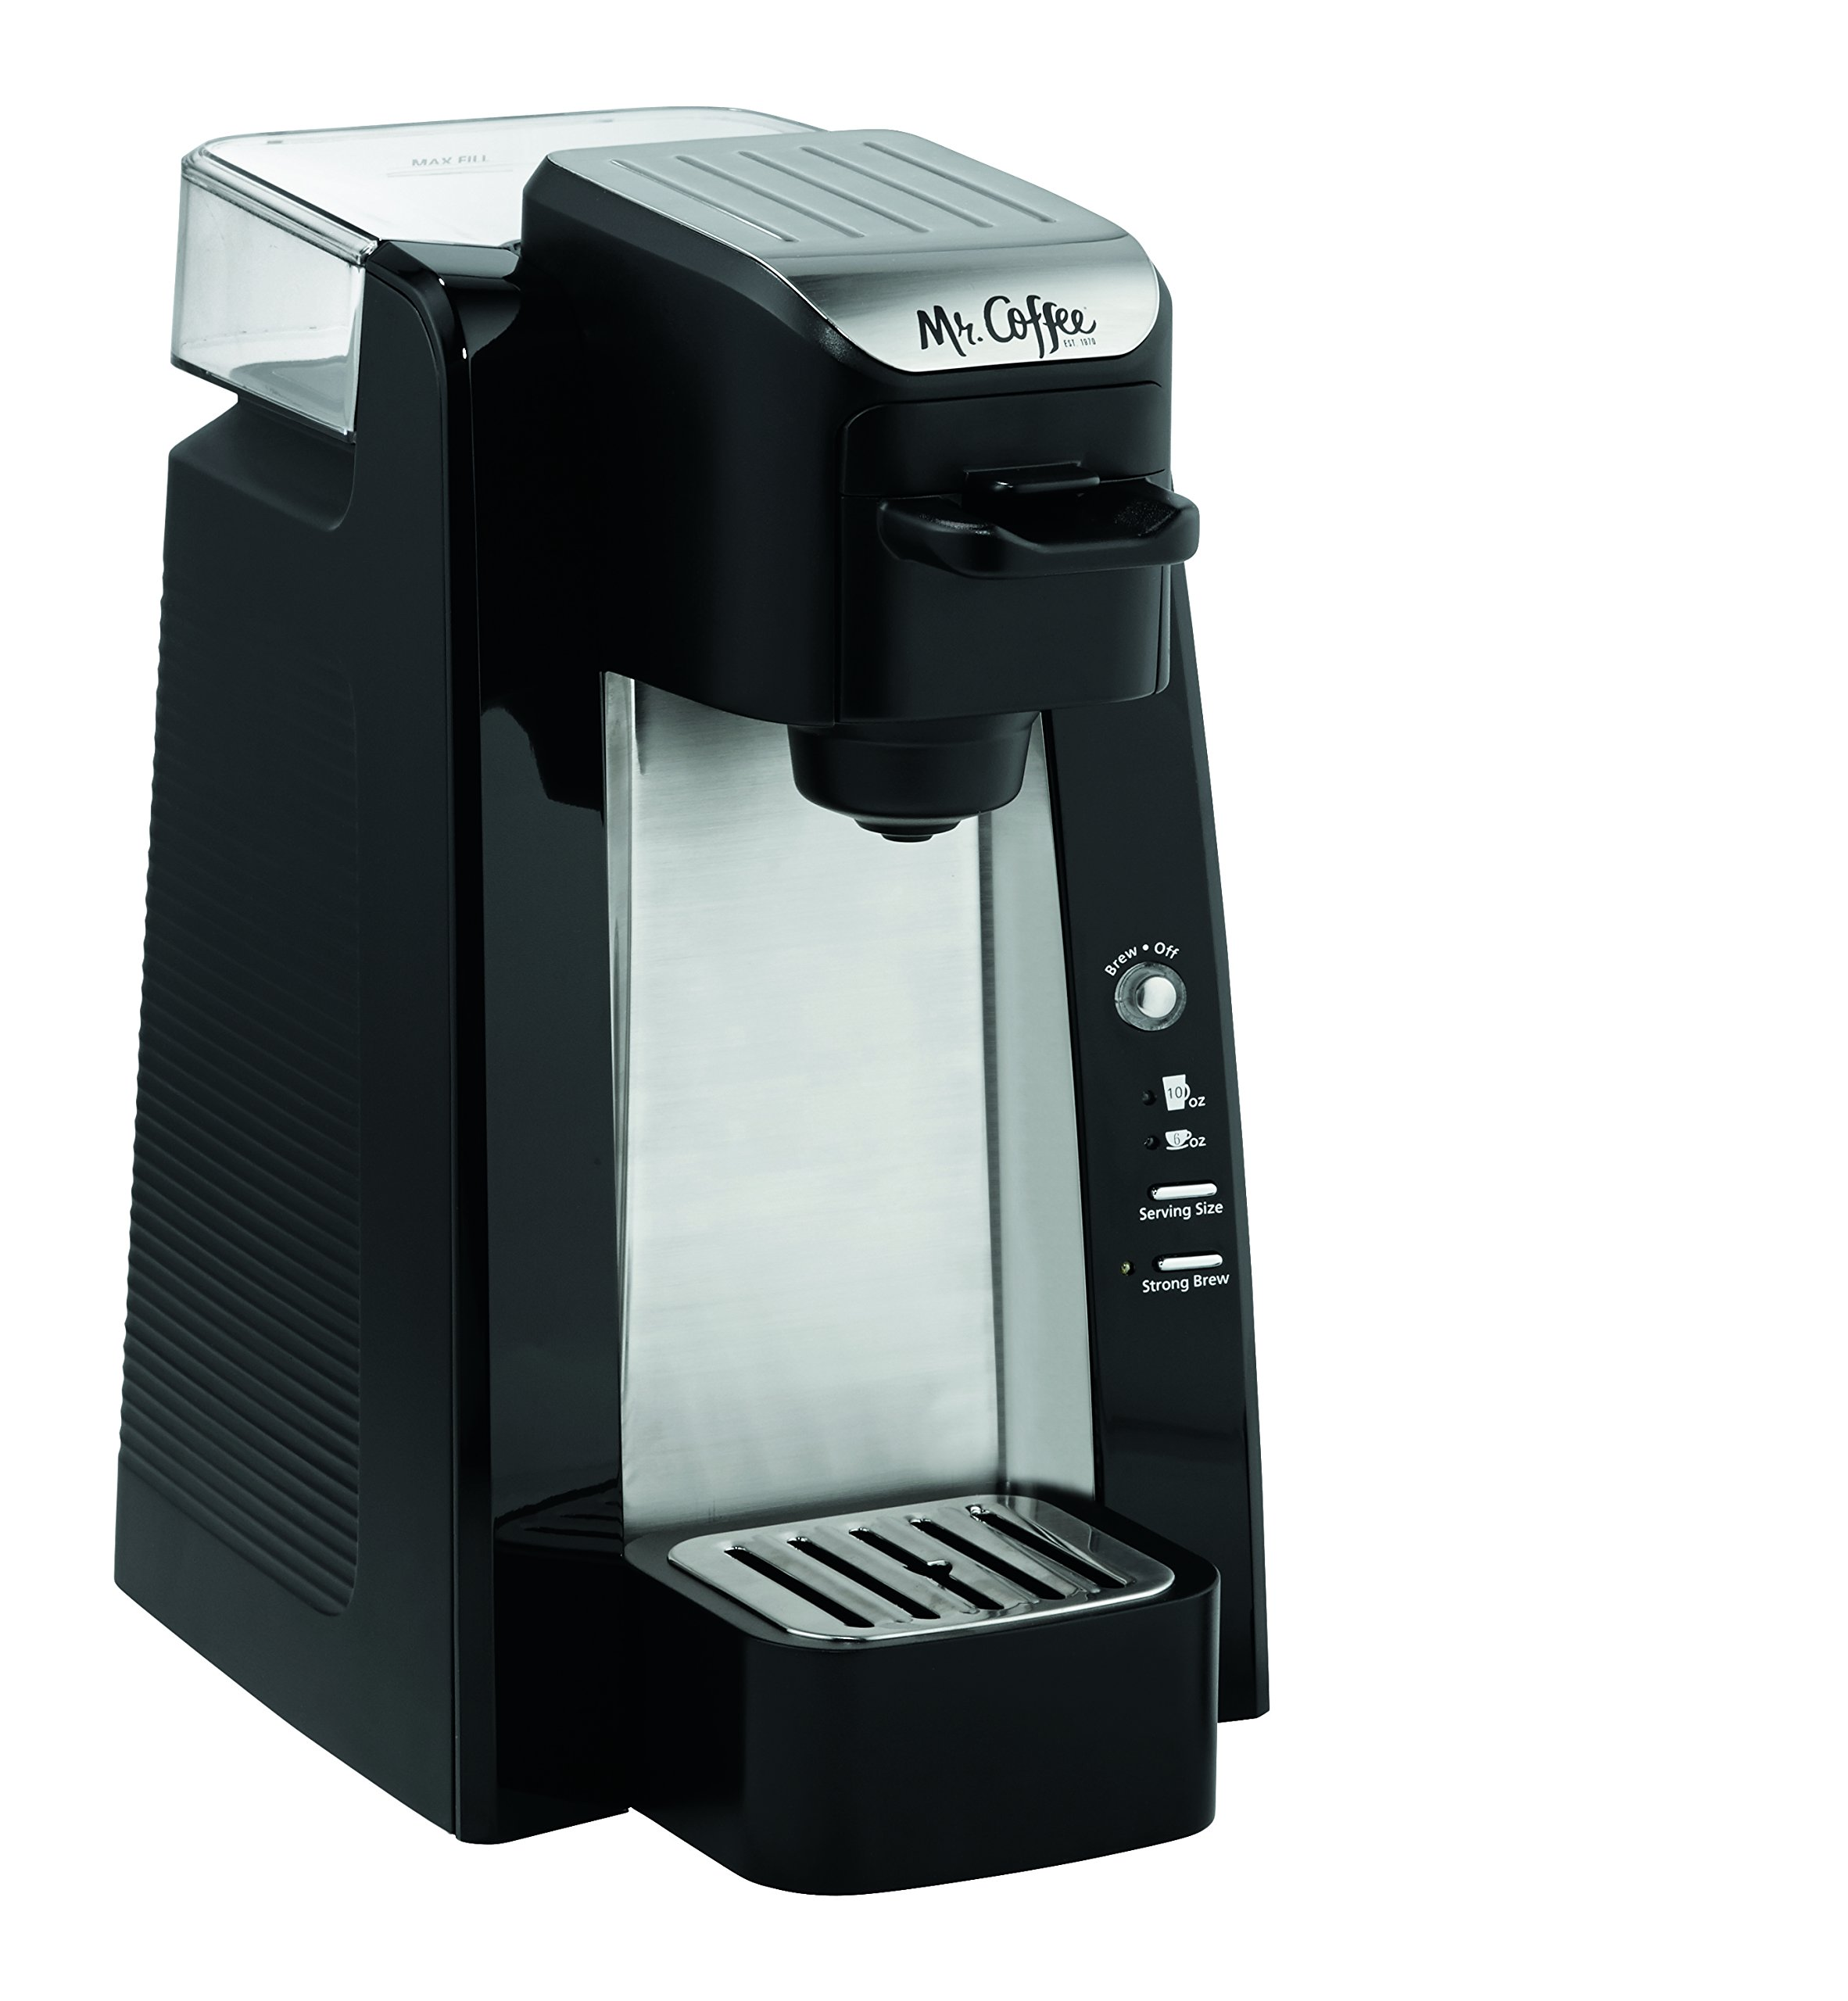 Mr. Coffee BVMC-SC500-2 Single-Serve K-Cup Coffee Maker, Black with Silver Panel